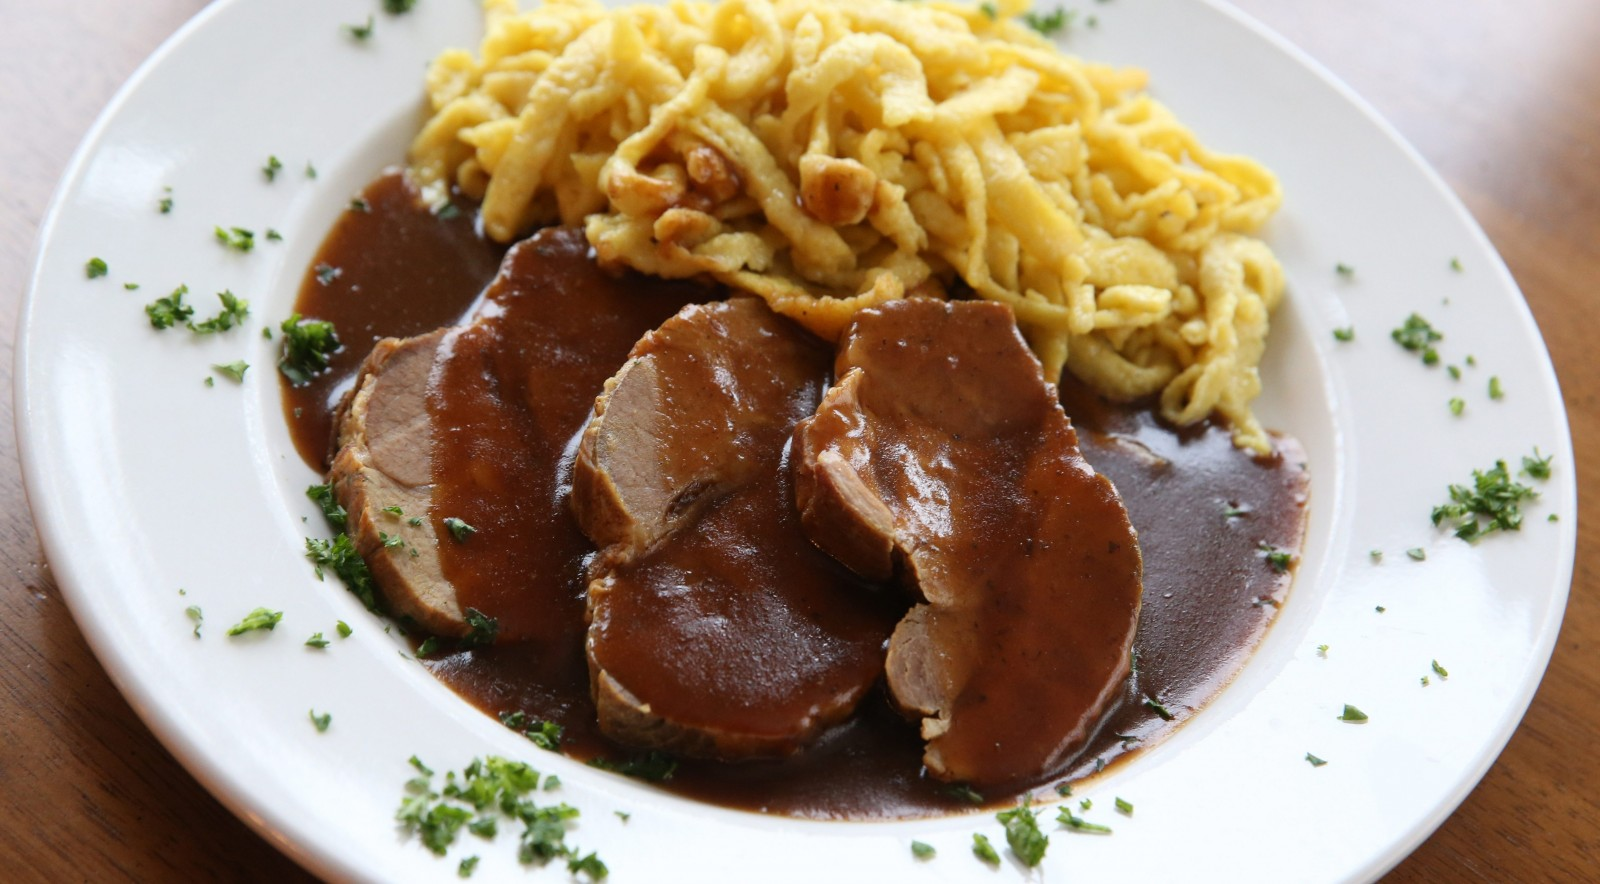 Pork comes in a dark beer gravy and is served with homemade spaetzle. (Sharon Cantillon/Buffalo News)